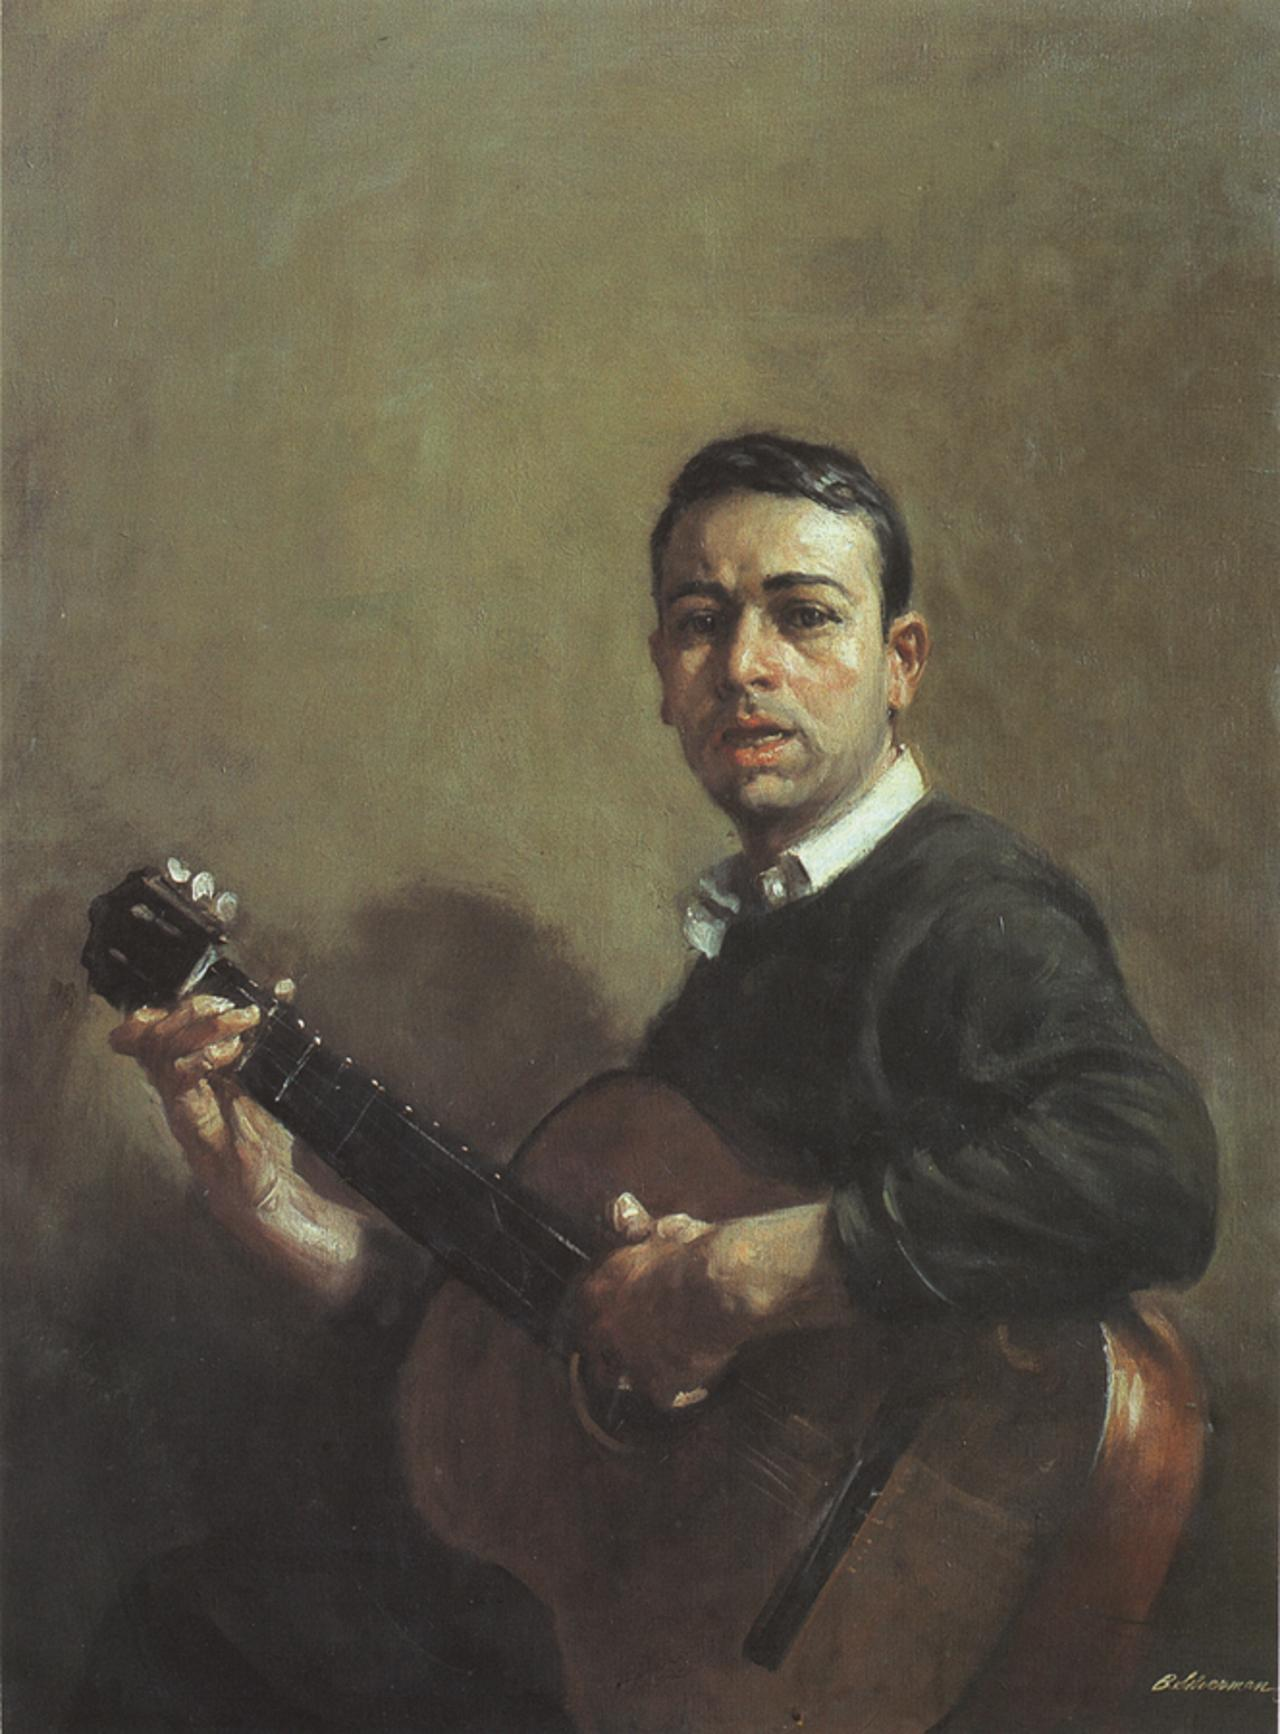 Self-portrait by Burton Silverman, 1959. (Image courtesy Silverman Studios Inc.)